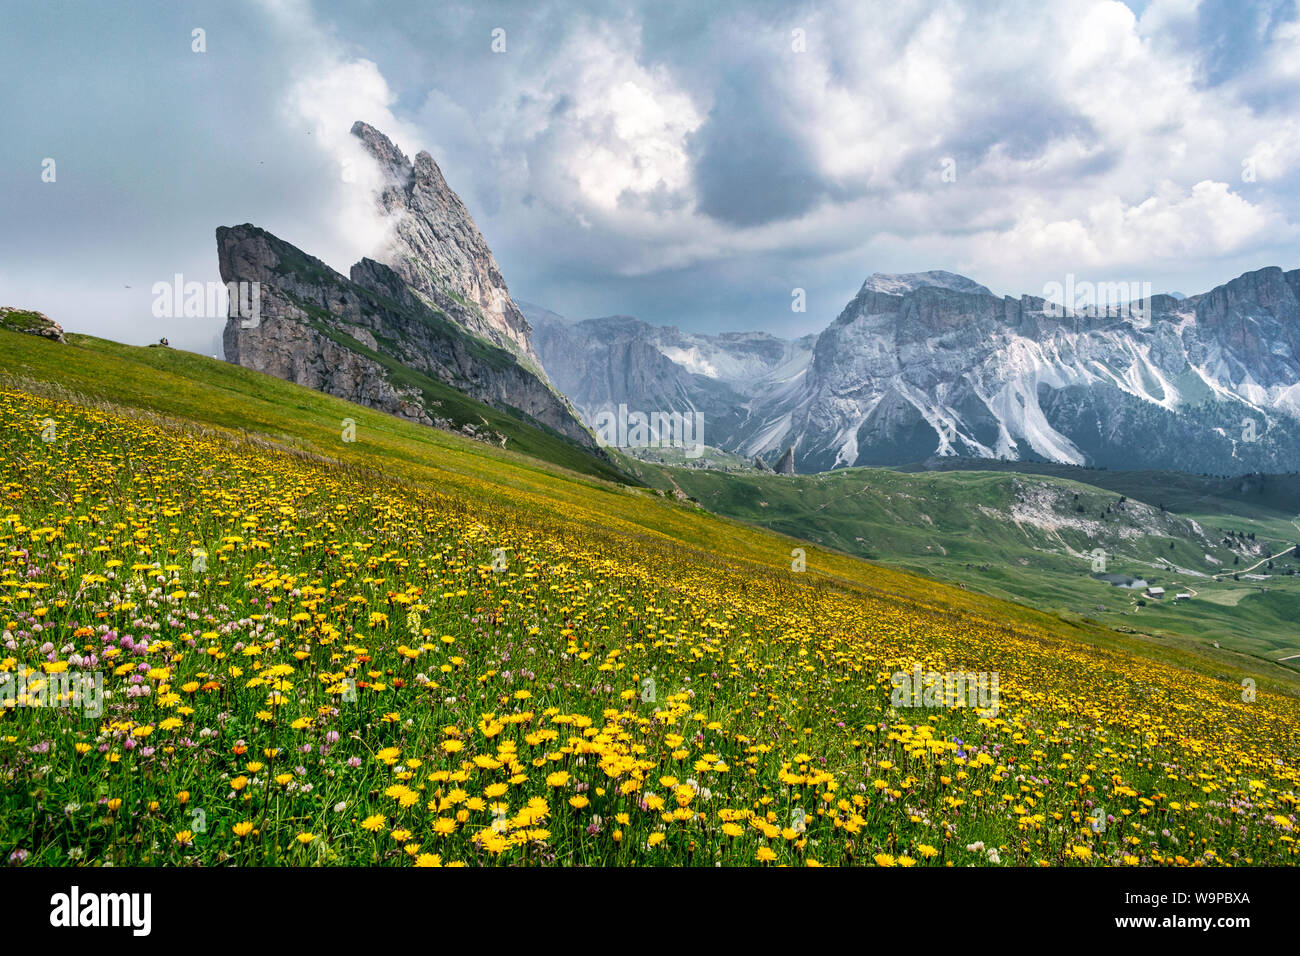 Wild flowers growing on the side of Seceda mountain in the Italian Dolimites of the Alps Stock Photo